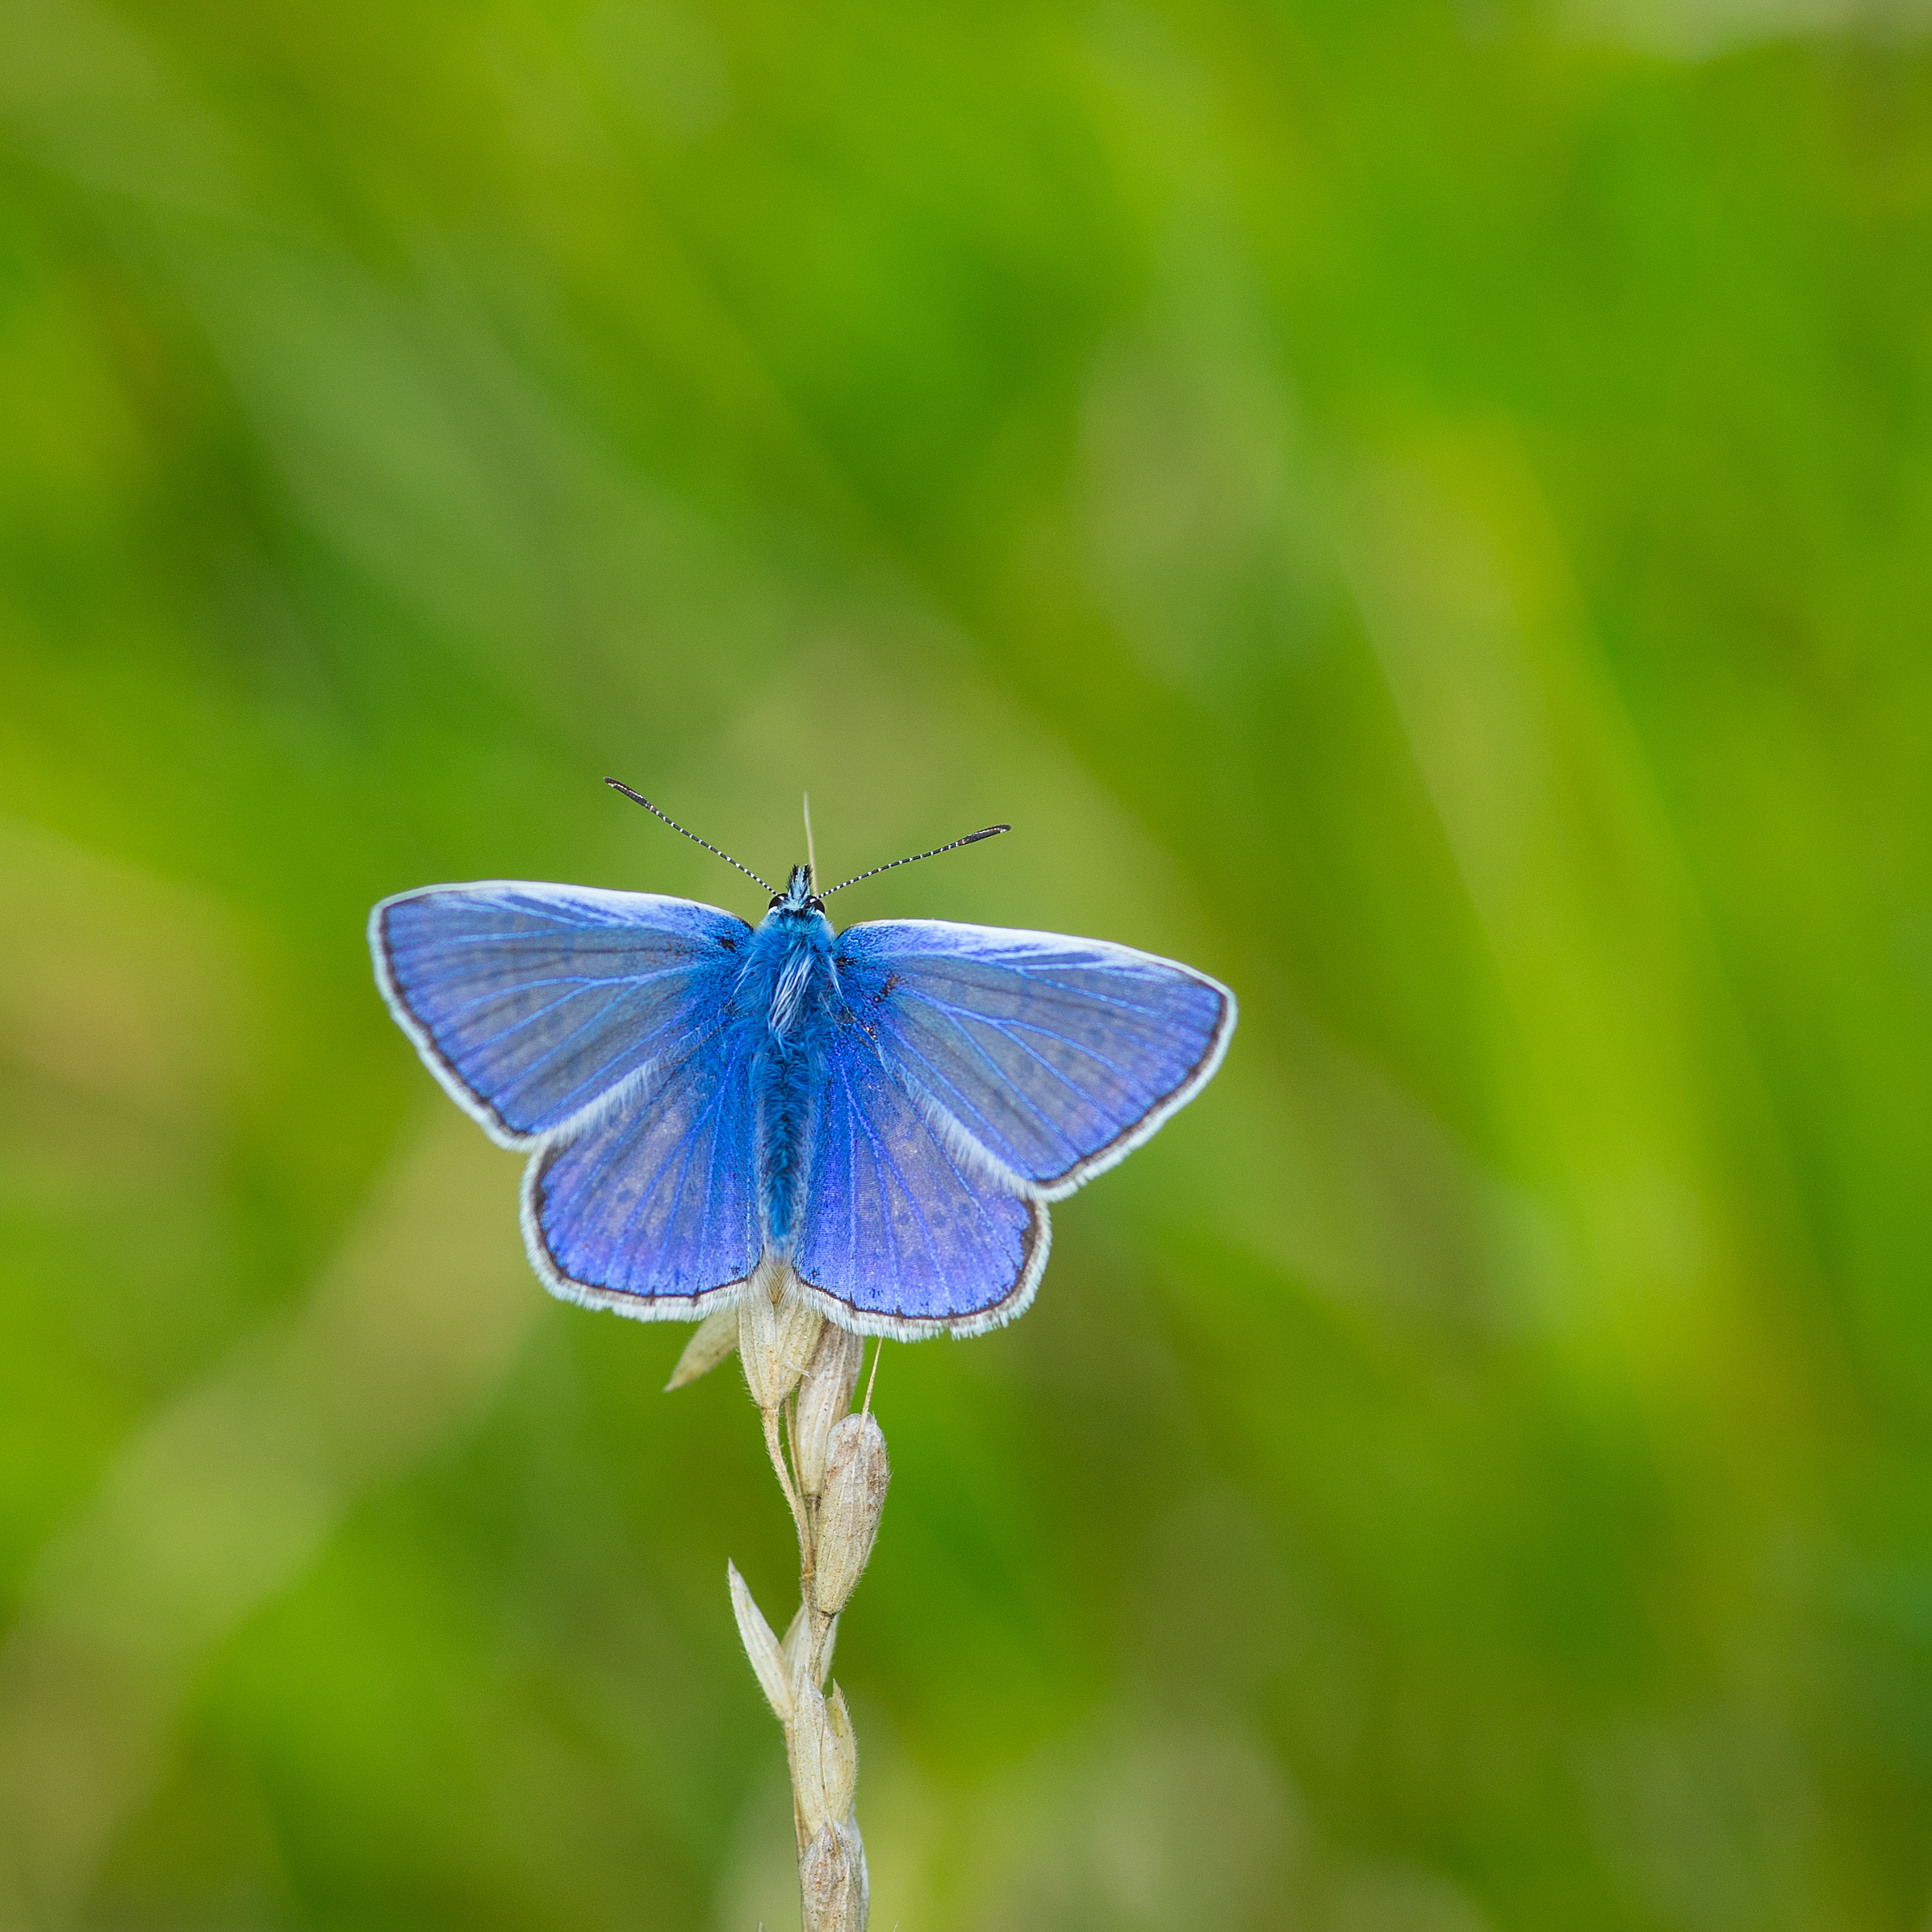 A hastily taken image of a Common Blue butterfly taken during a quiet moment on one of my Macro Photography Workshops.